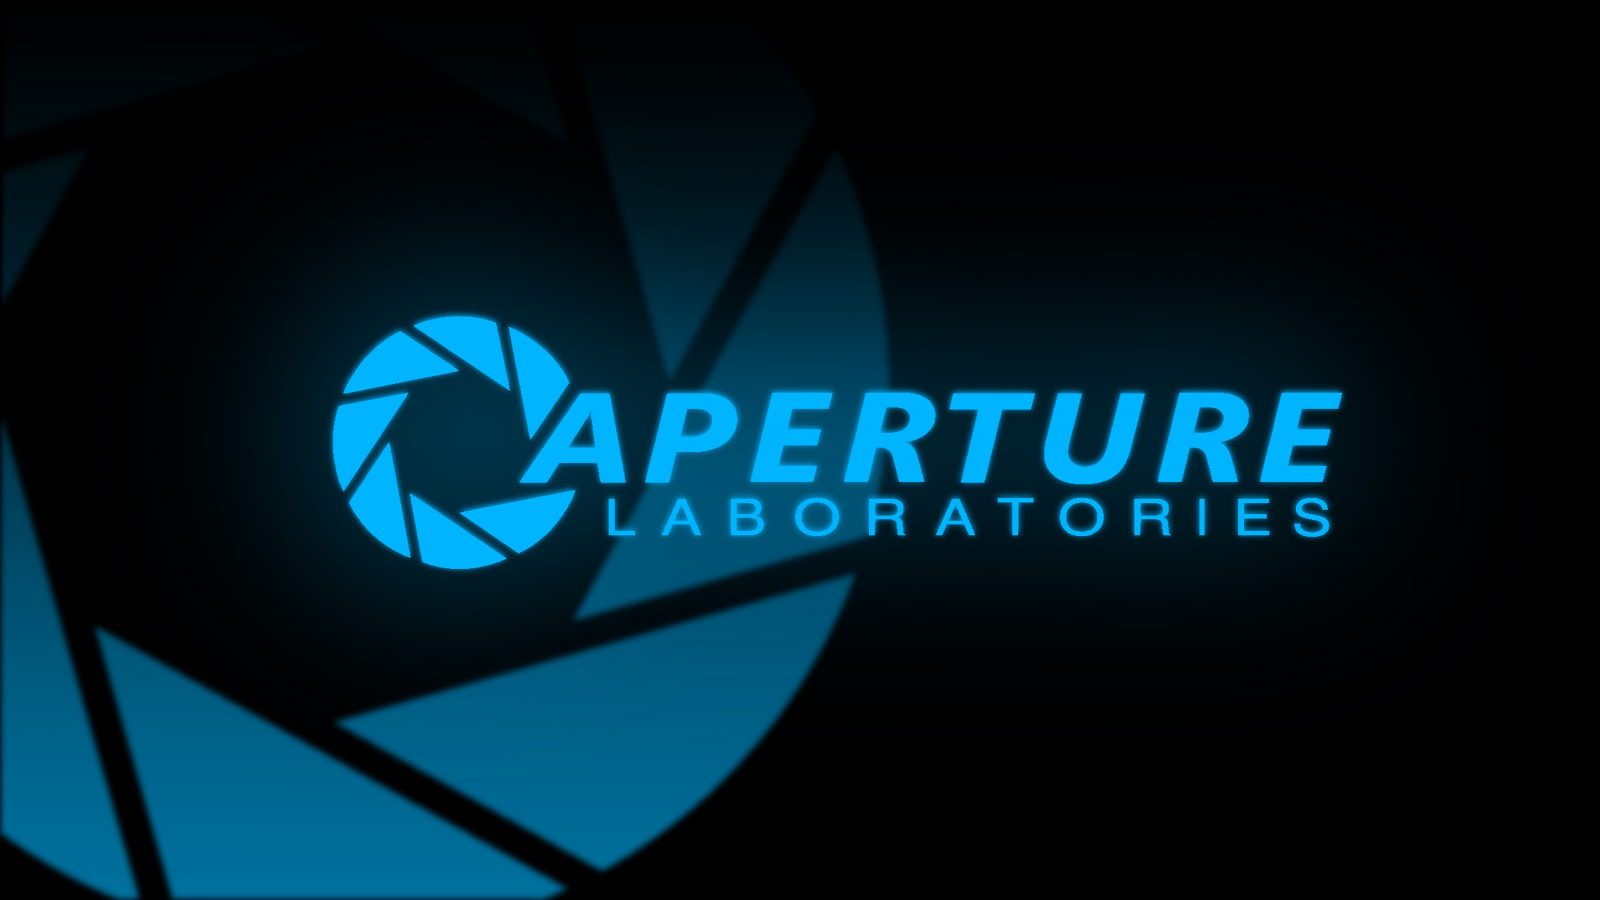 ... Yet Another Portal 2 Wallpaper by GhostedToast